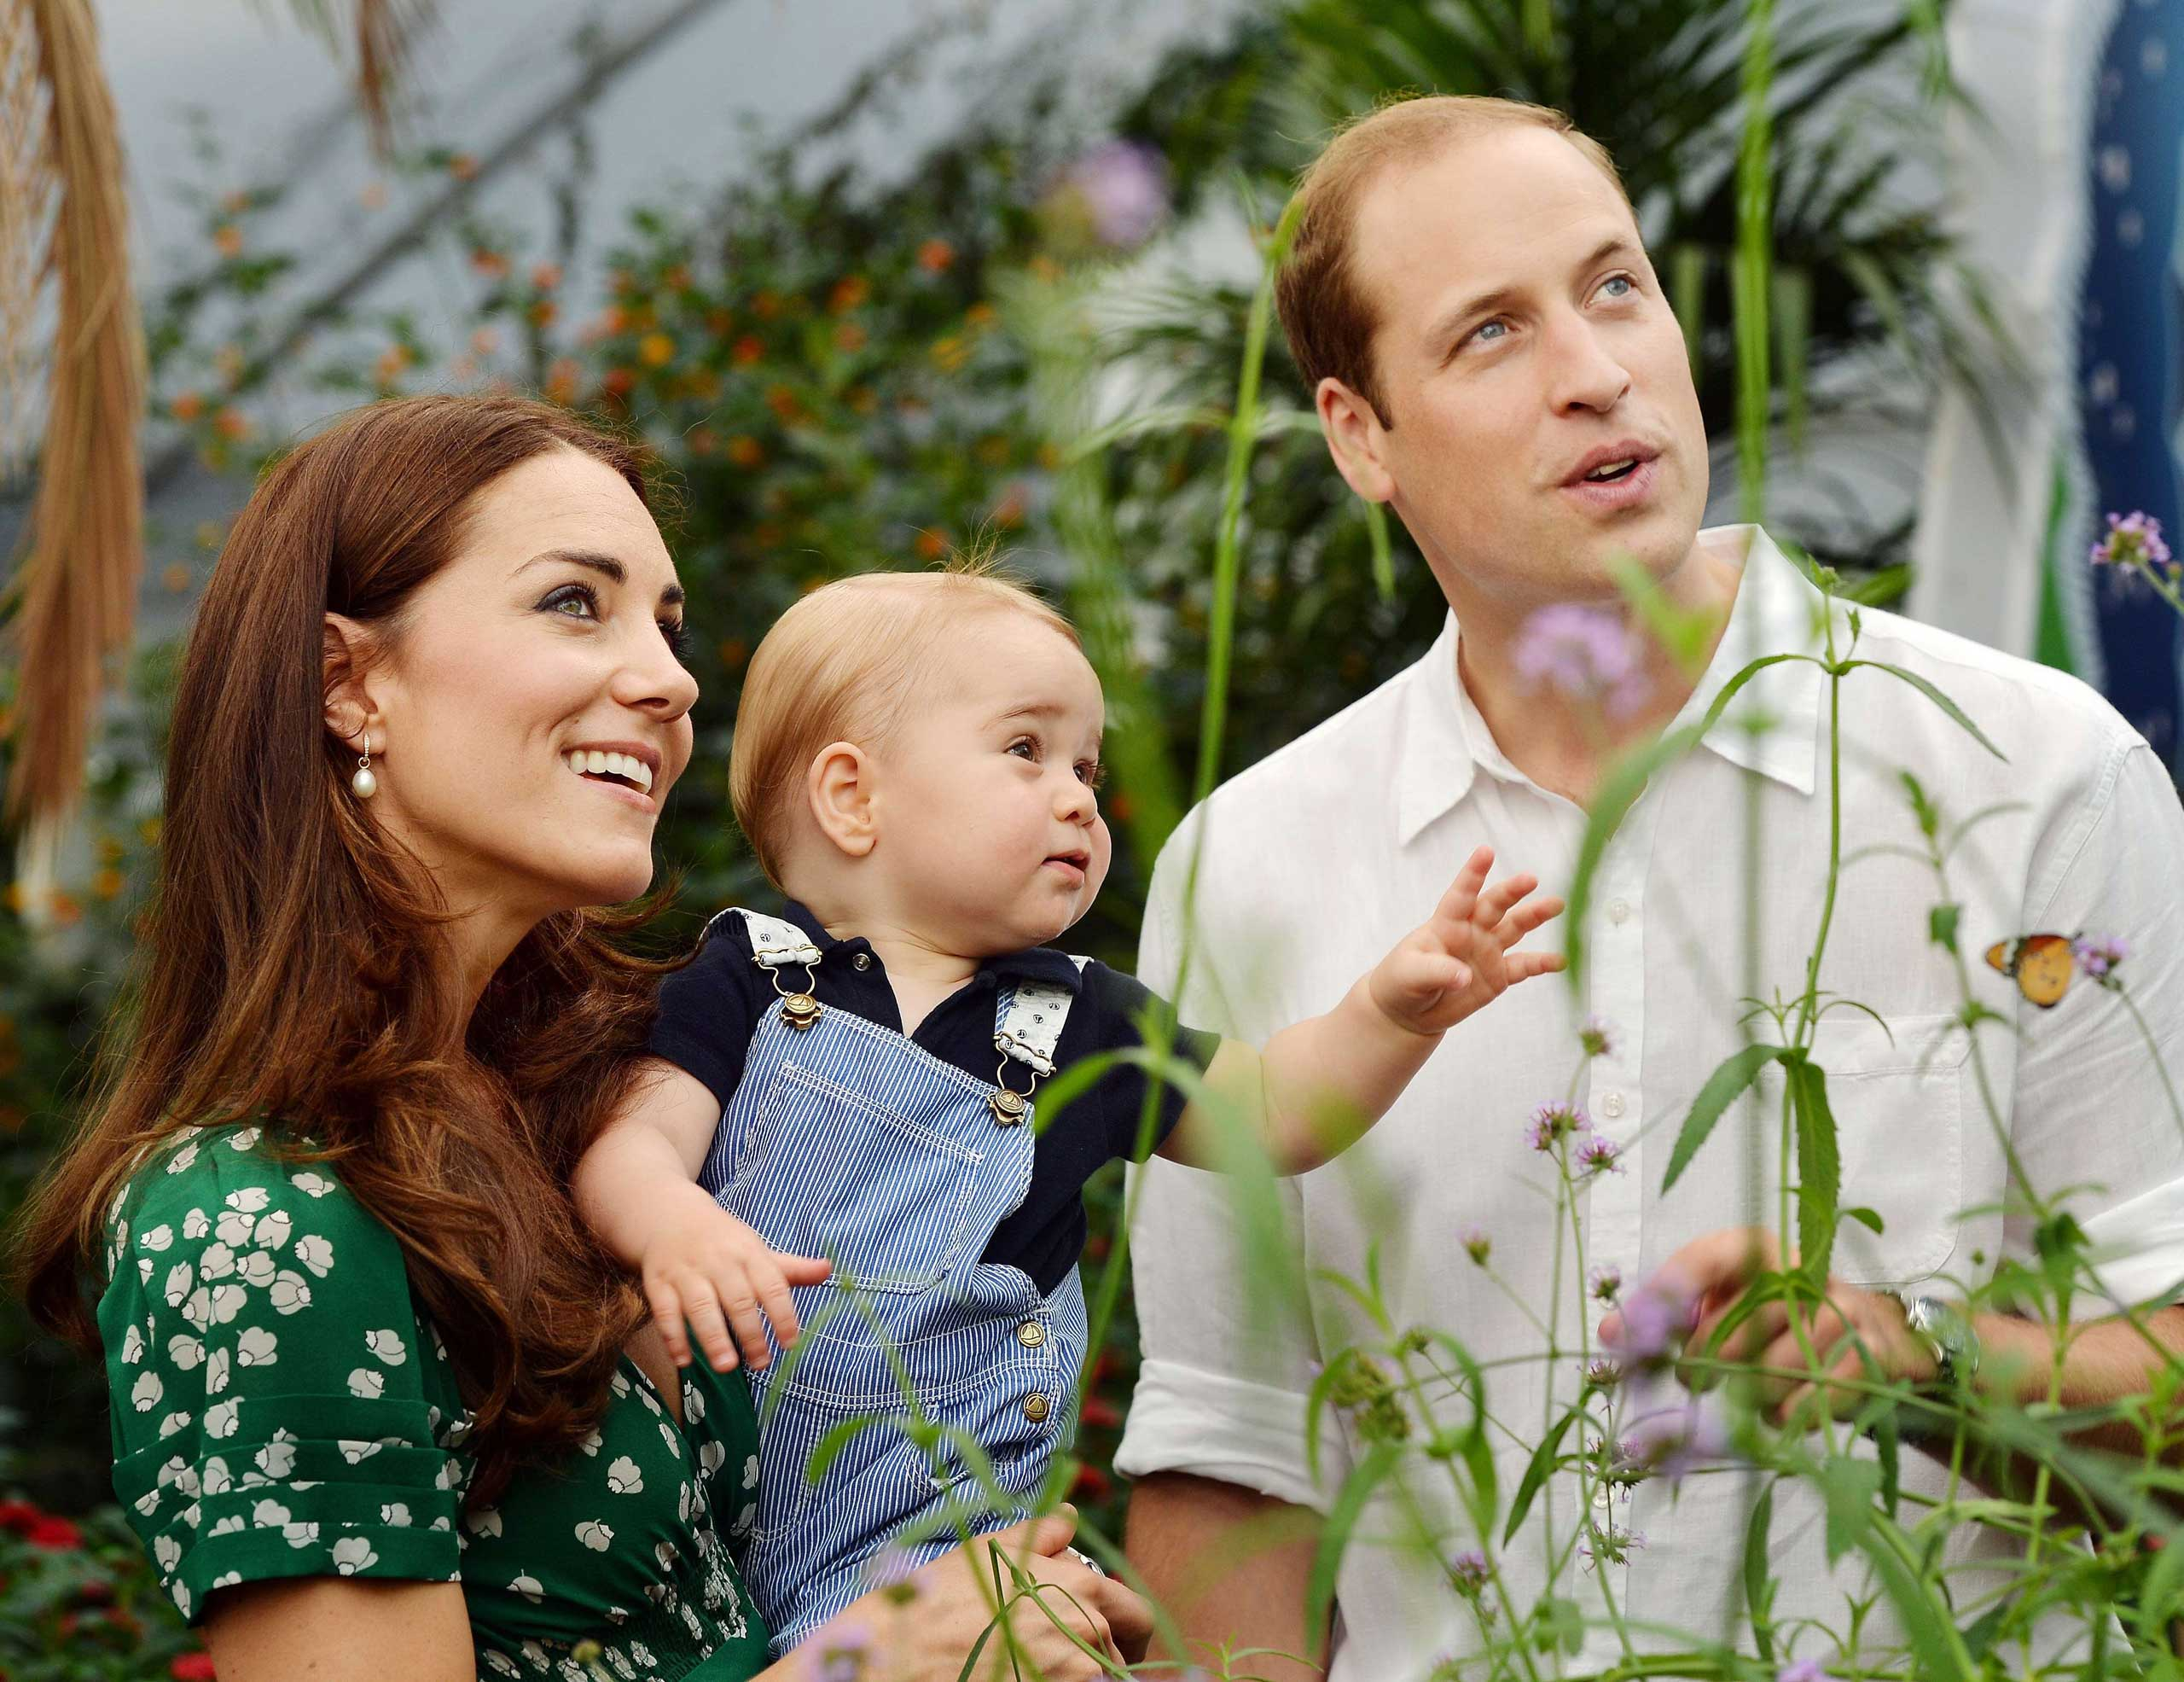 Prince William (L) and Catherine, Duchess of Cambridge with Prince George during a visit to the Sensational Butterflies exhibition at the Natural History Museum in London on July 2, 2014.